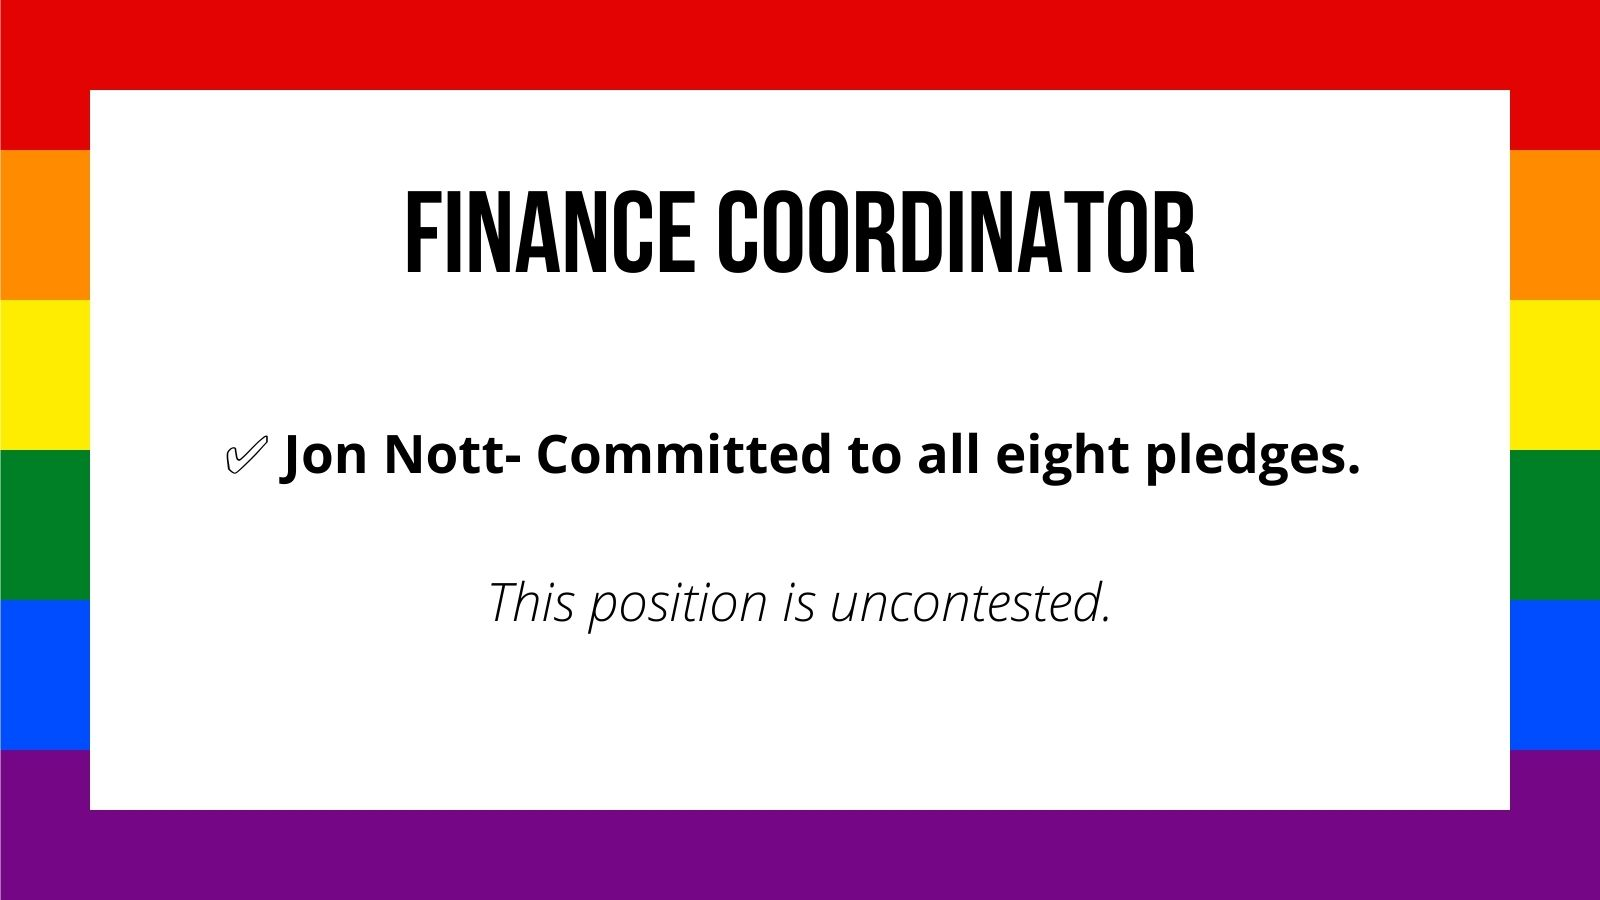 Finance Coordinator Jon Nott- Committed to all eight pledges. ✅ This position is uncontested.